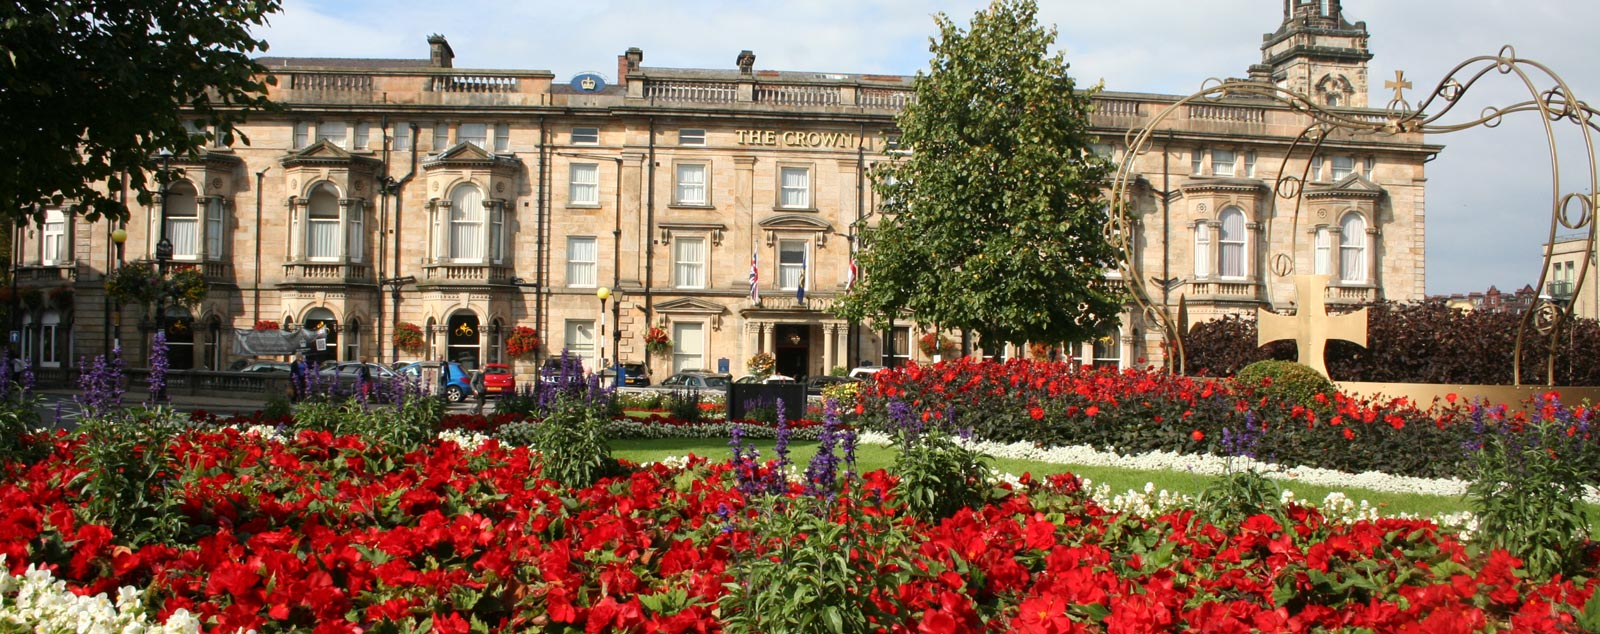 Historic nineteenth century buildings overlook vibrantly coloured red roses in a green garden.